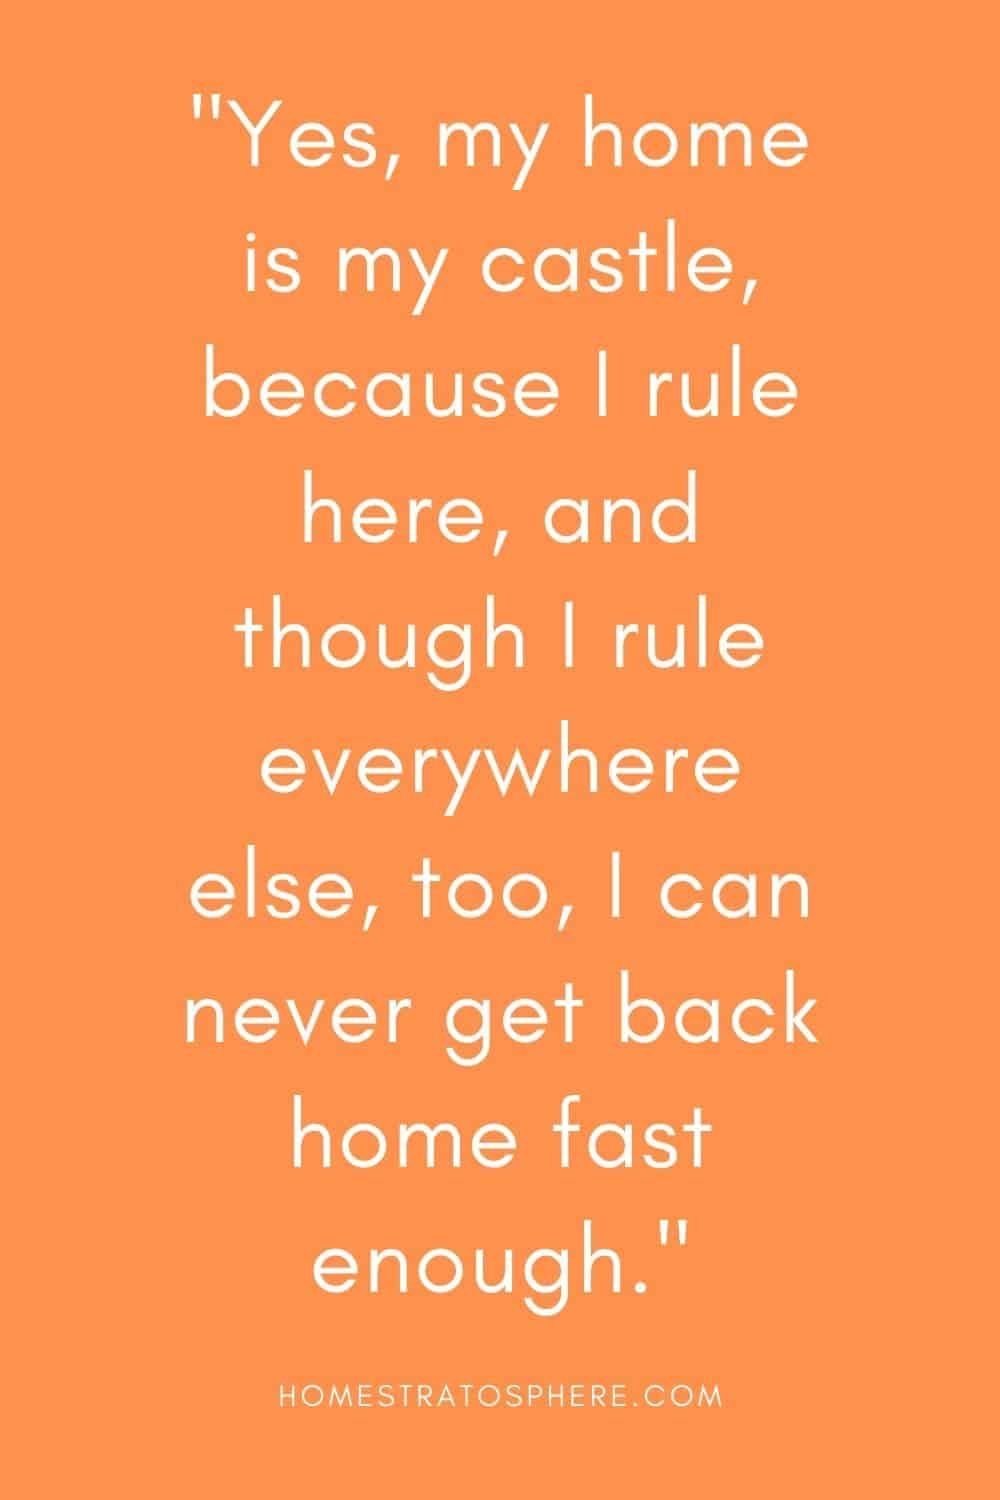 """""""Yes, my home is my castle, because I rule here, and though I rule everywhere else, too, I can never get back home fast enough."""""""